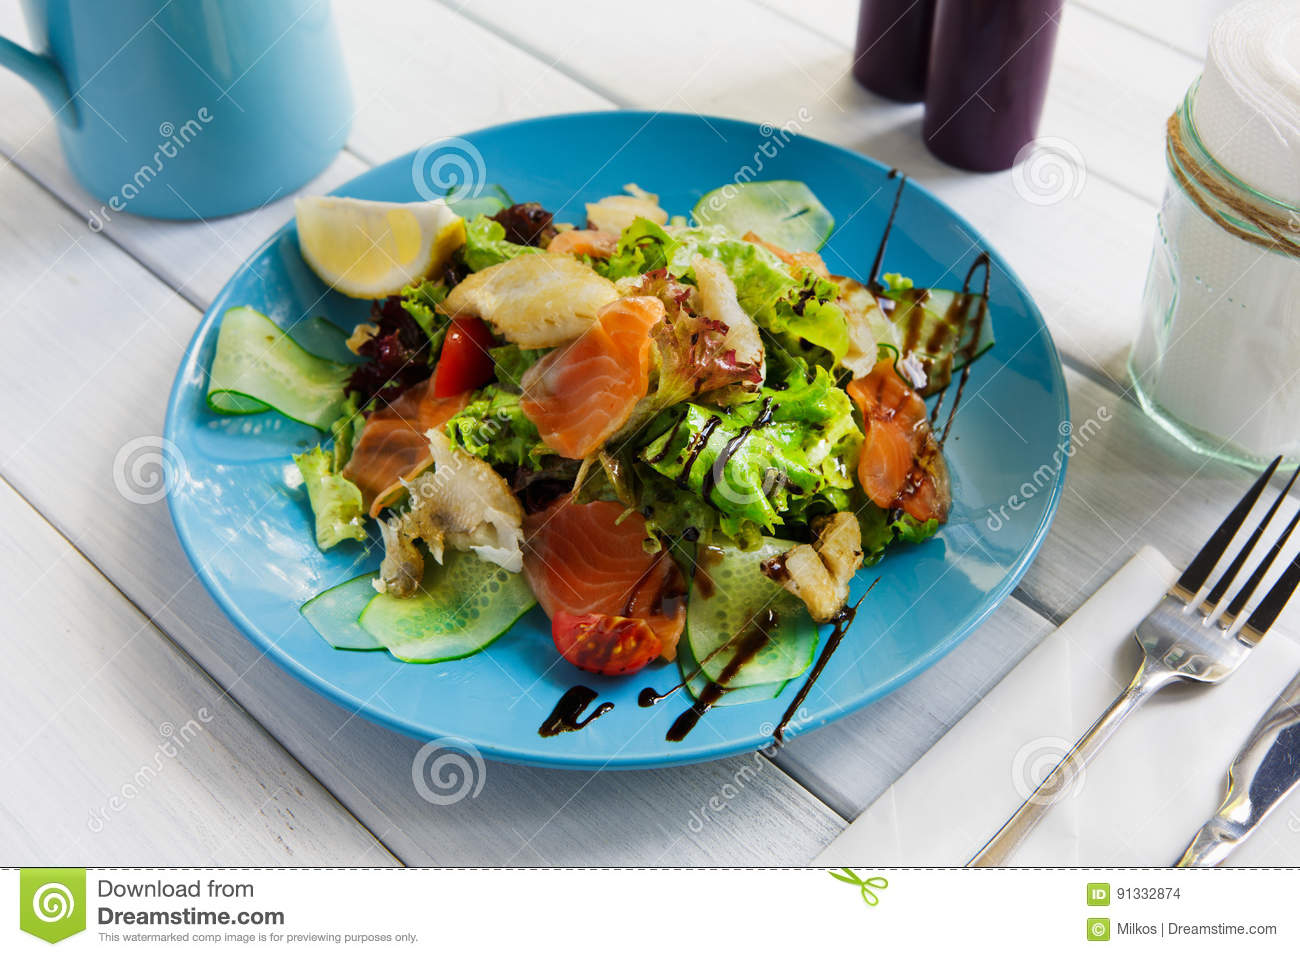 Healthy Restaurant Food Salmon And Cod Fish Salad Closeup Stock Photo Image Of Green Appetizer 91332874